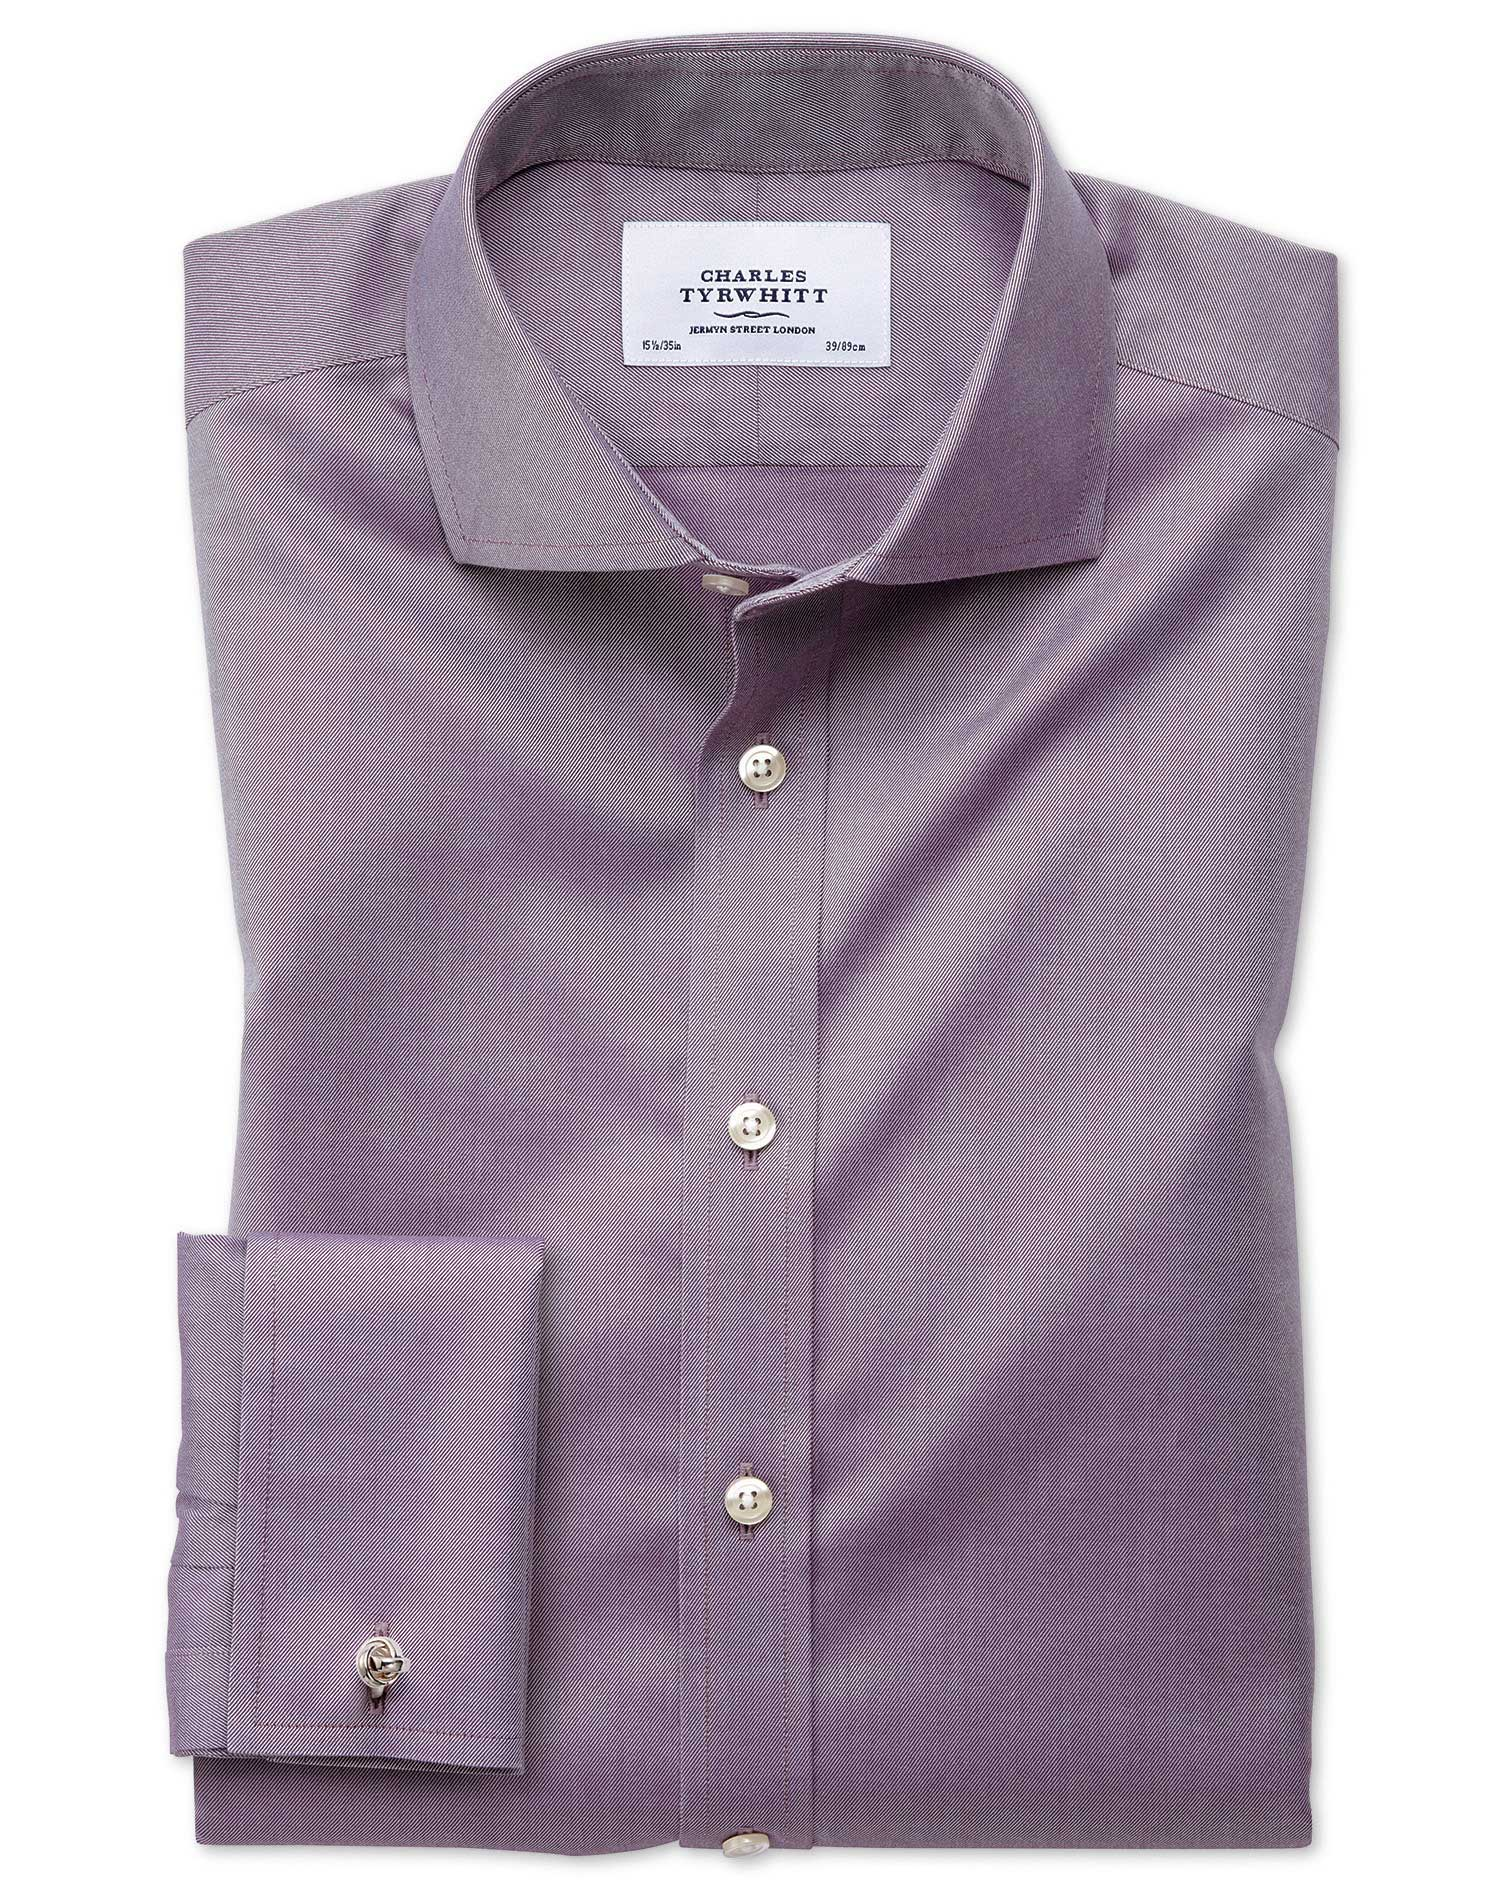 Extra Slim Fit Cutaway Non-Iron Twill Dark Purple Cotton Formal Shirt Double Cuff Size 15.5/35 by Ch